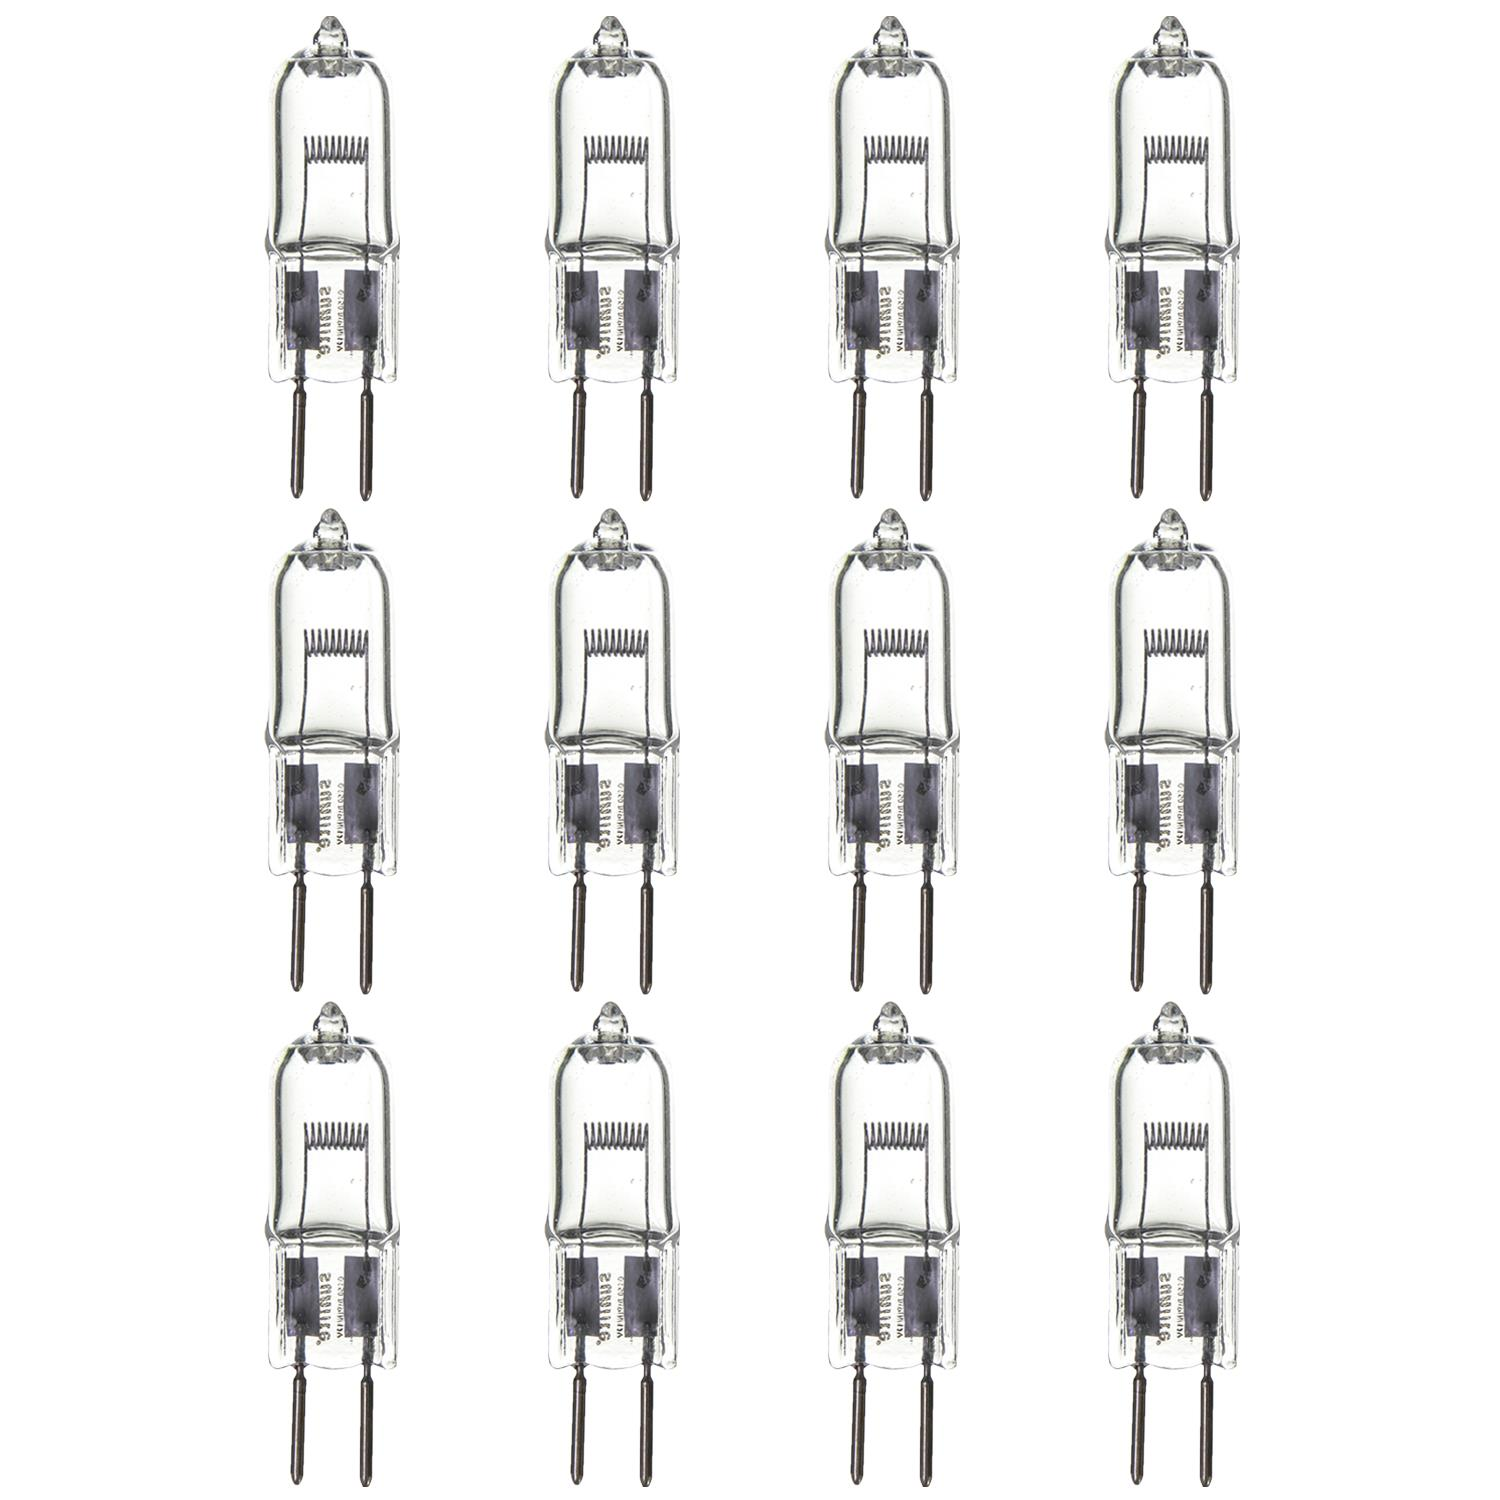 12 Pack Sunlite Halogen 150 Watt Single Ended T3 5 Gy6 35 Base 12v Clear Light Bulb